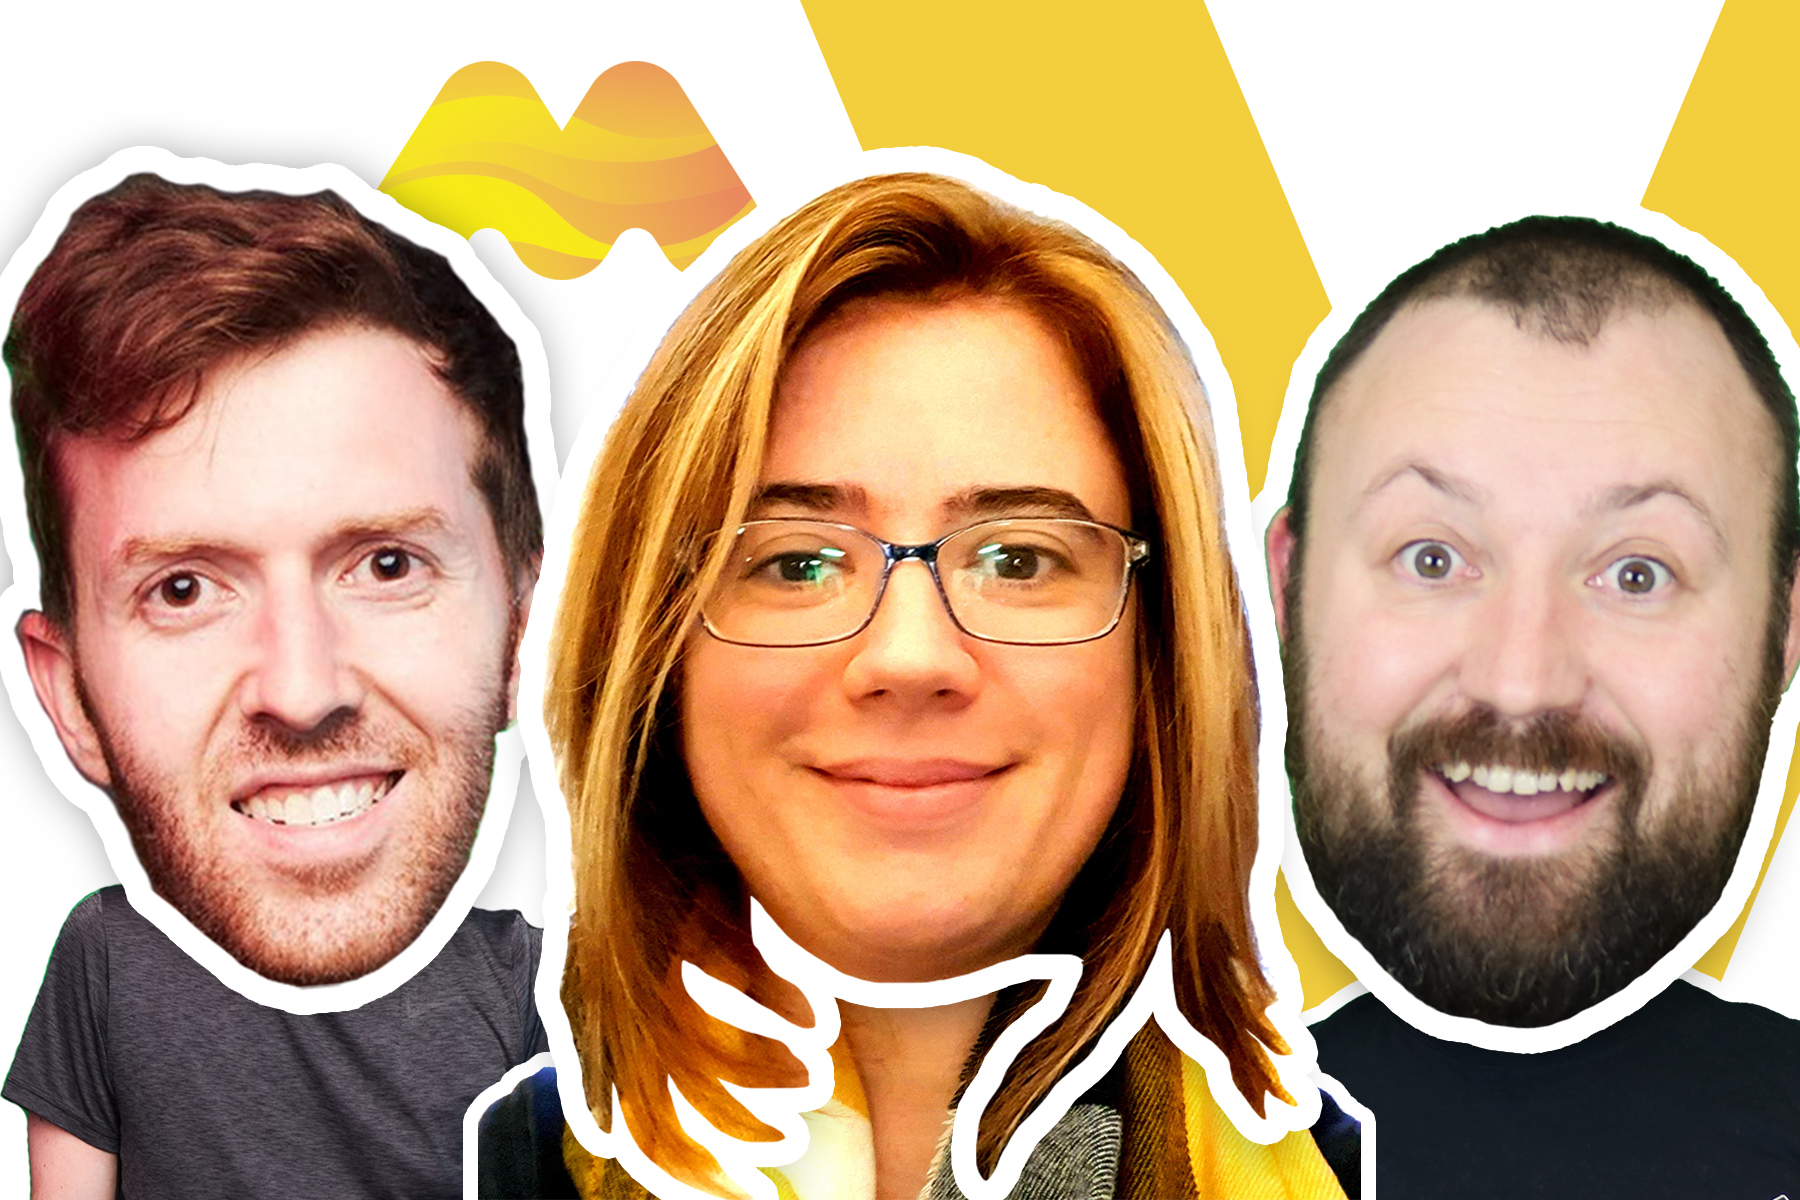 voice design sprints with Maaike Coppens on VUX World with Kane Simms and Dustin Coates